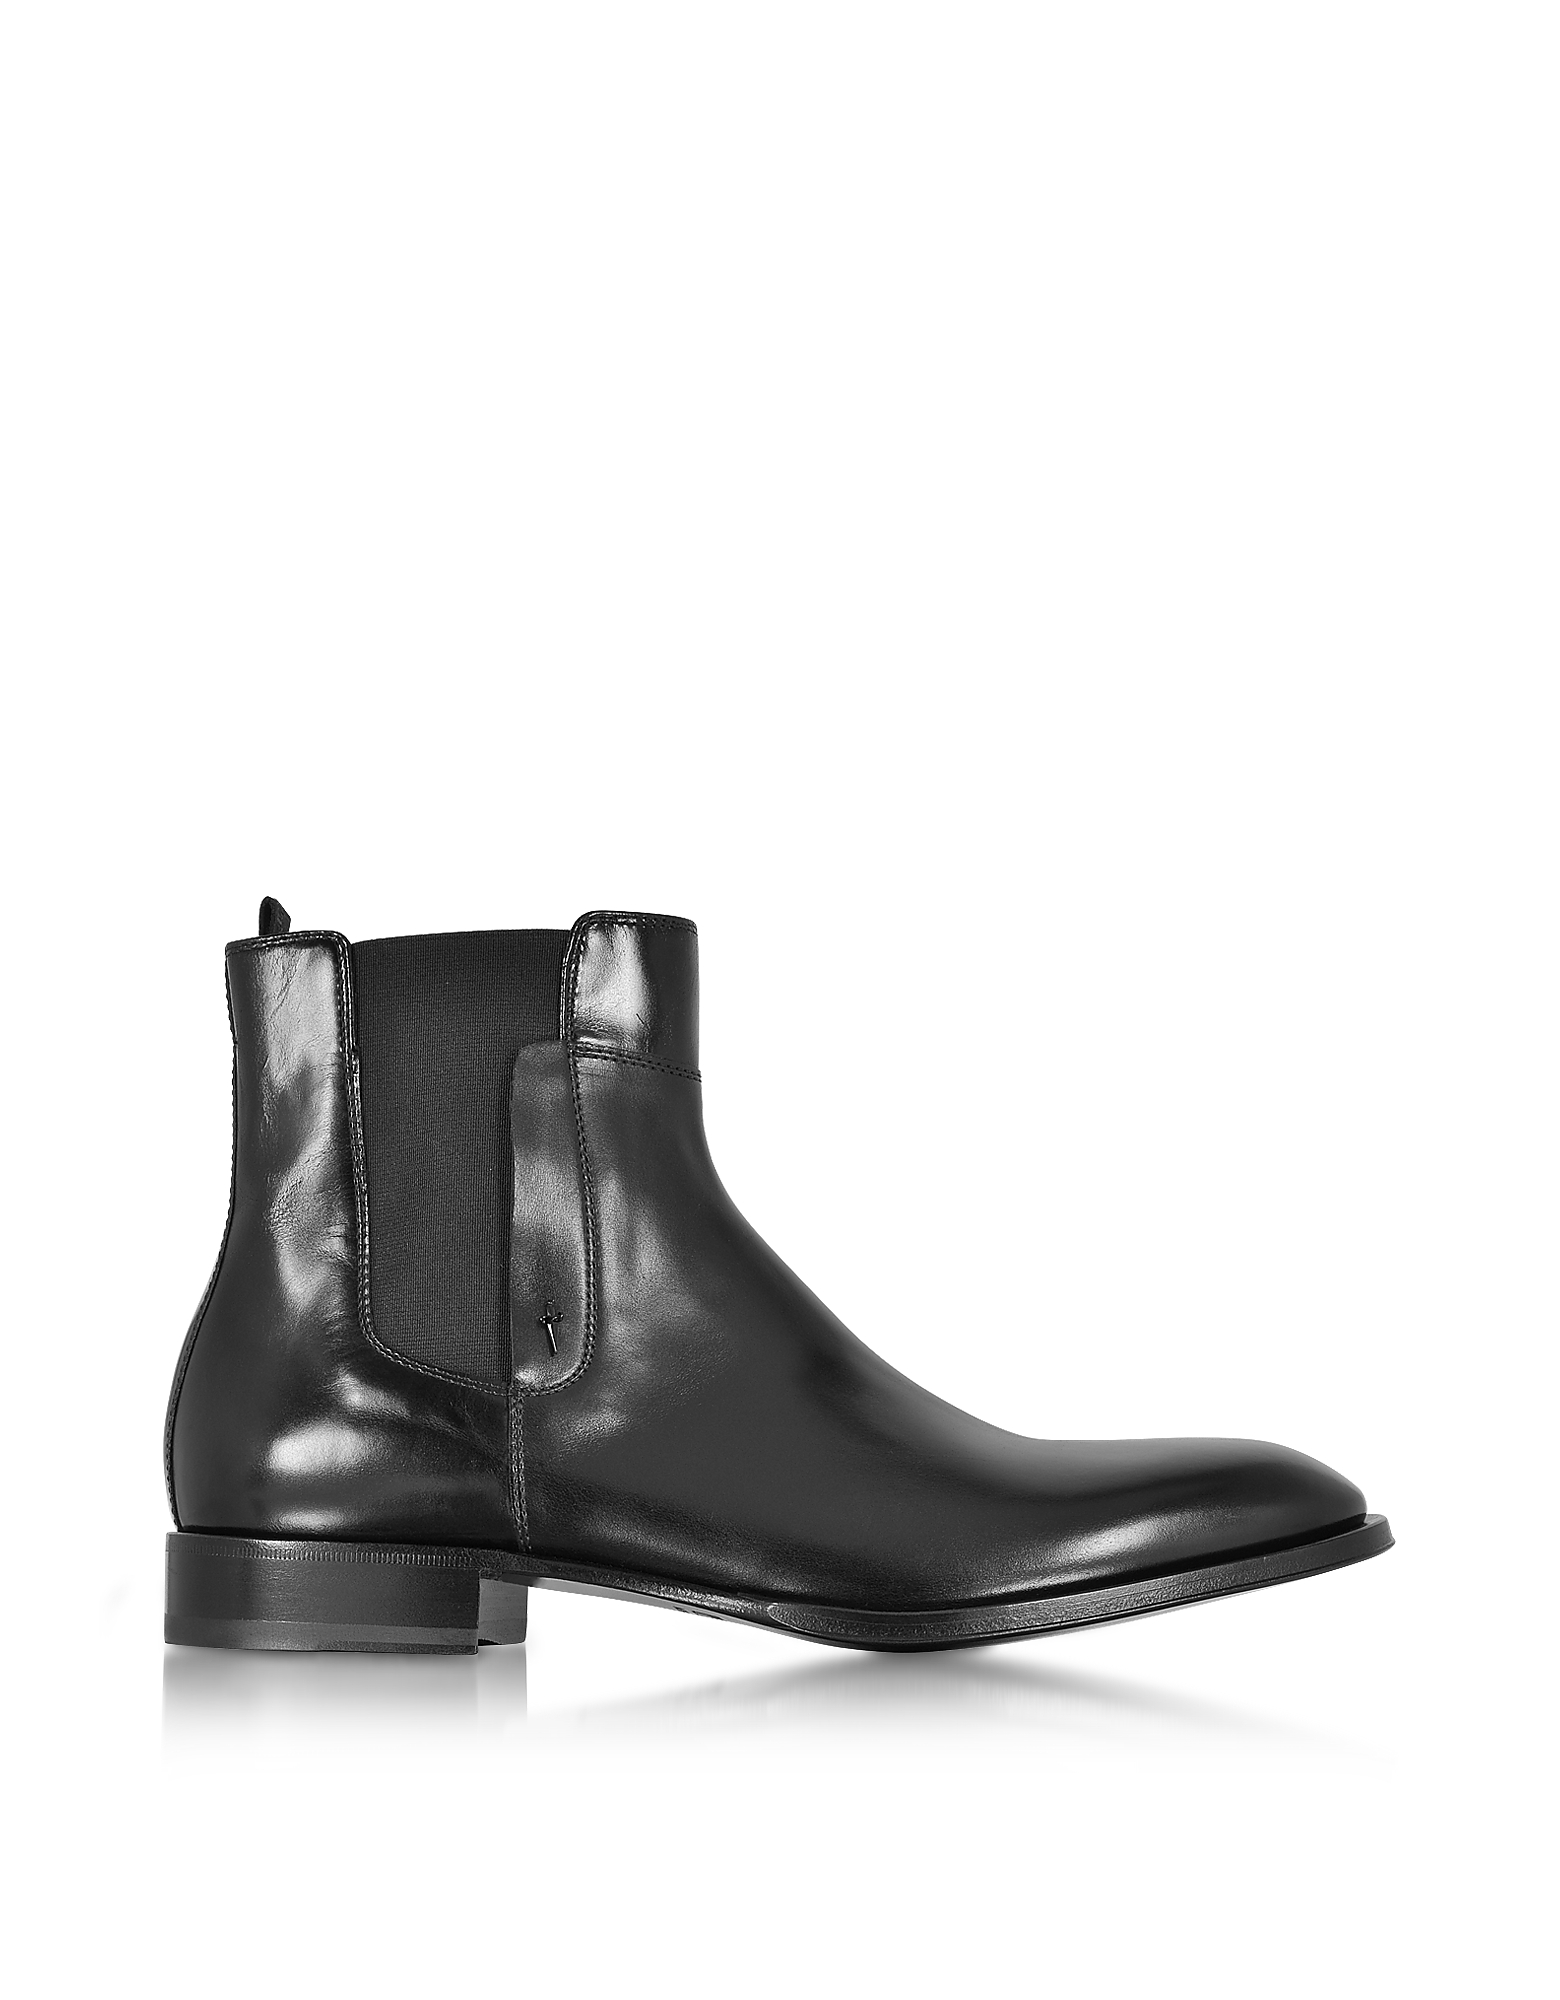 Cesare Paciotti Shoes, Black Baby Horse Boots